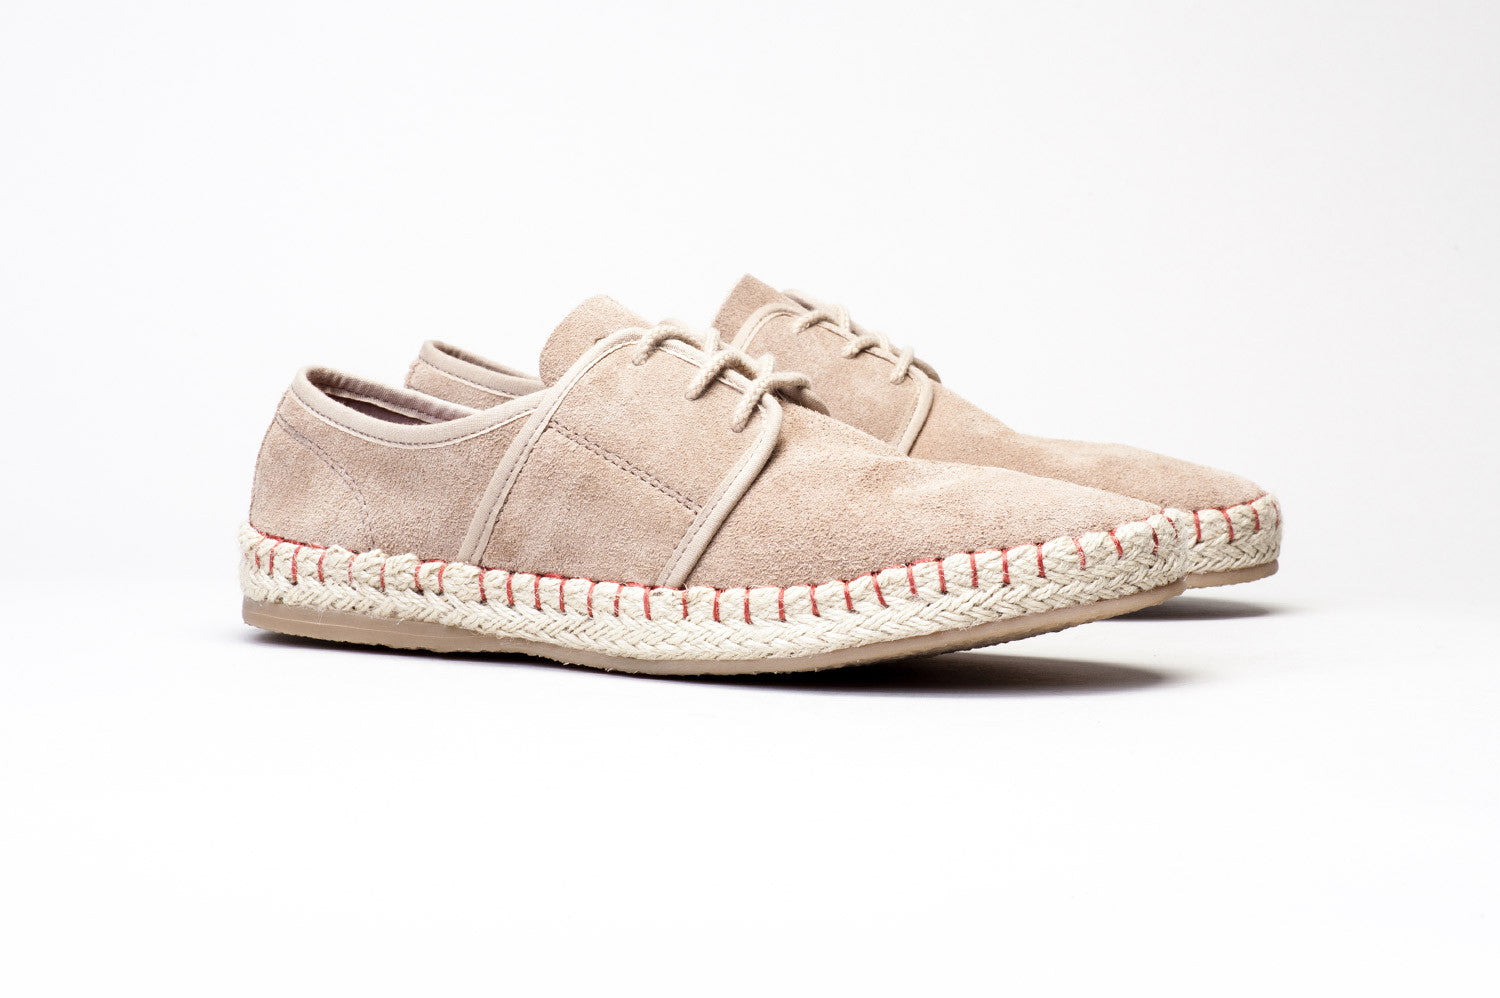 0760M_Sorrento_Sand_Shoe_Suede_Sand